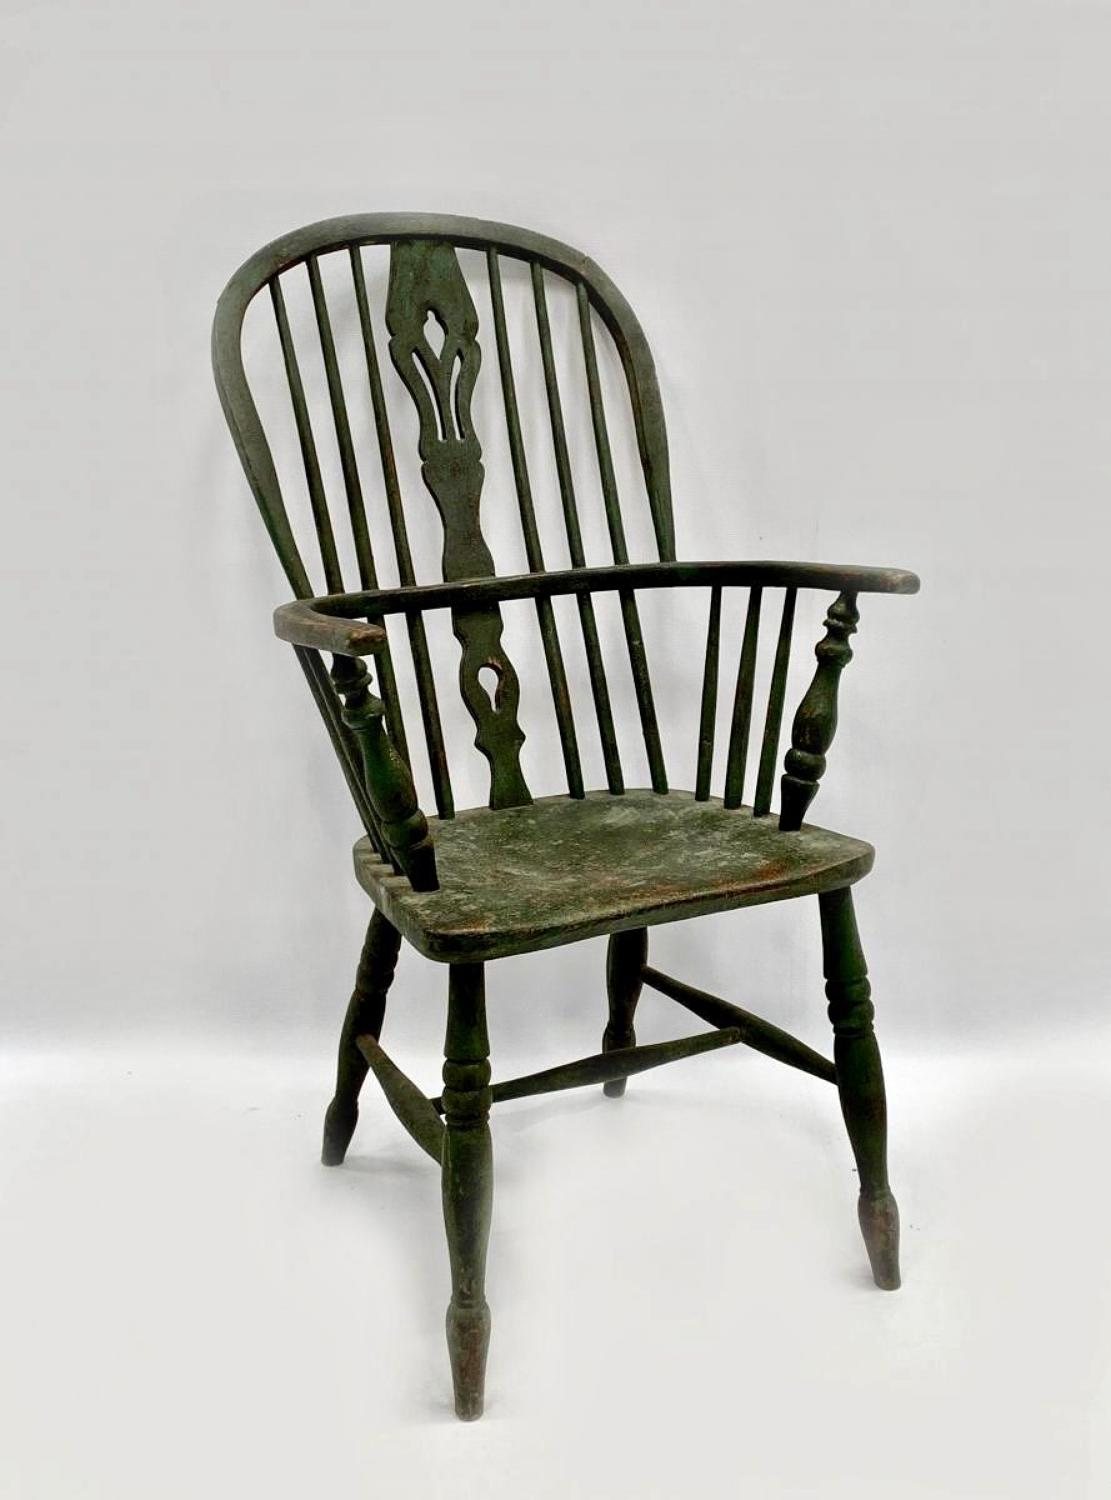 A painted Windsor chair